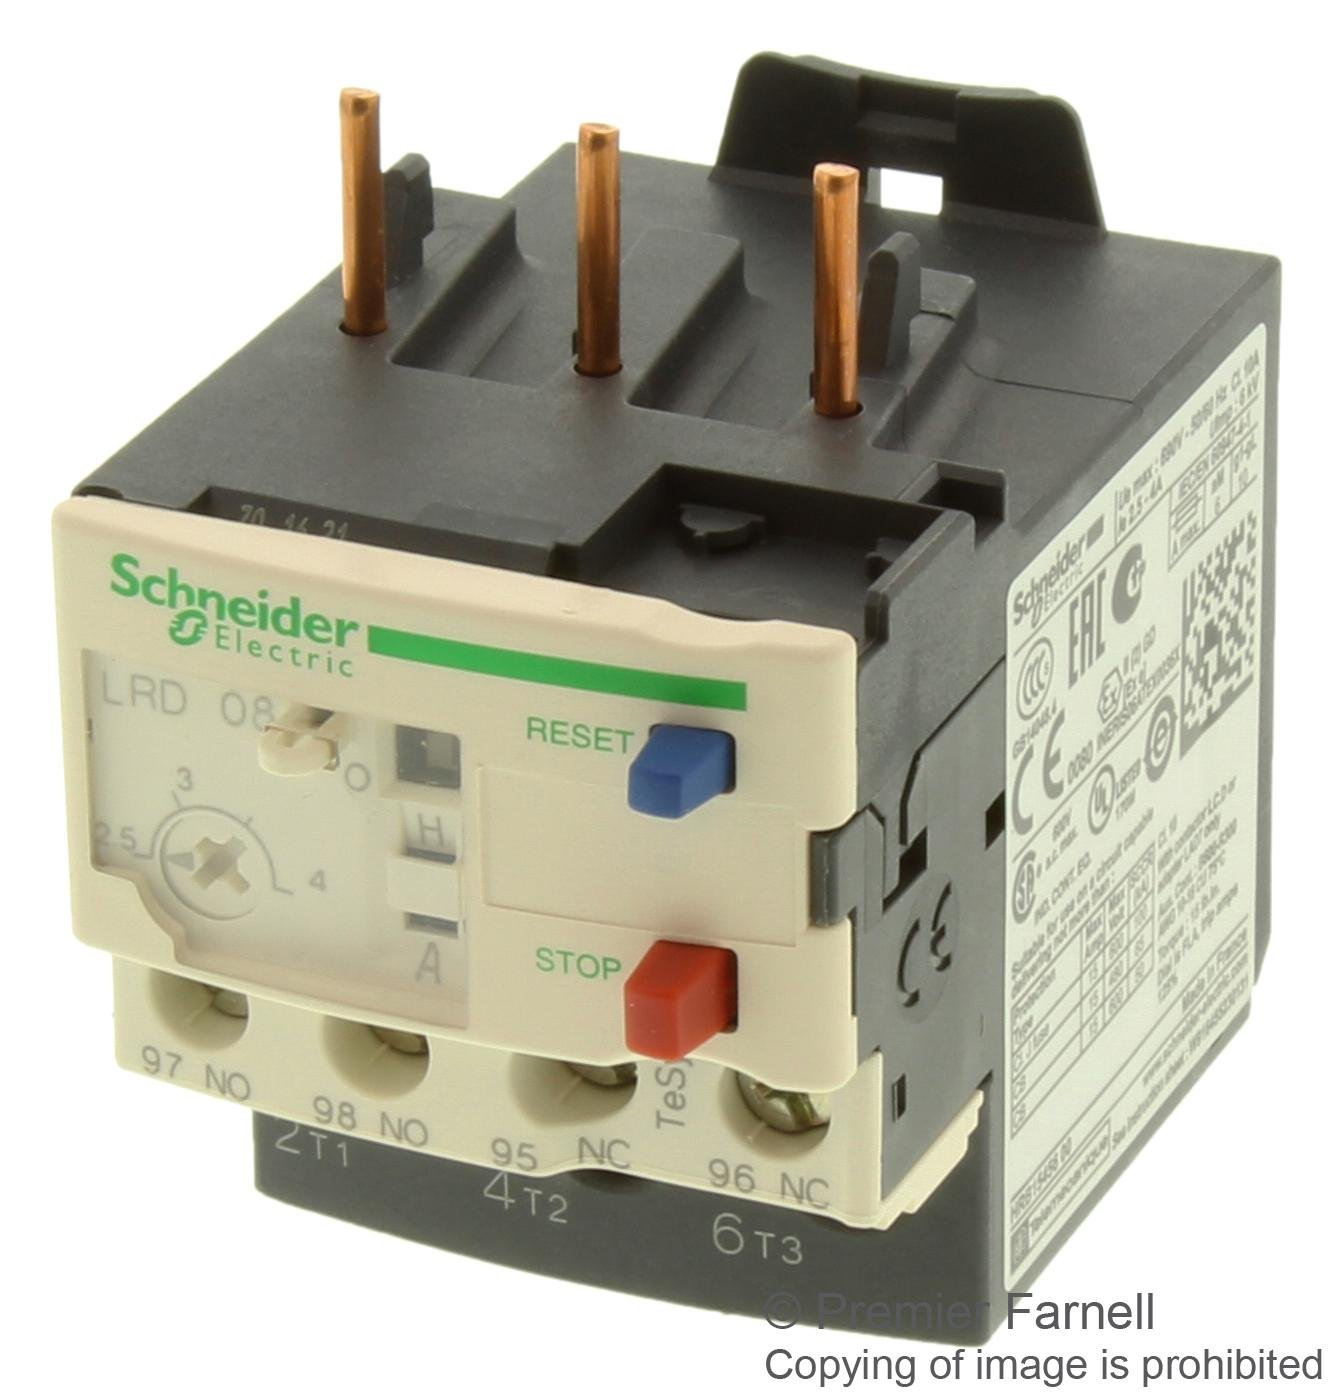 NEW TeSys LRD thermal overload relays LR-D08 LRD08 2.5-4A Class 10A